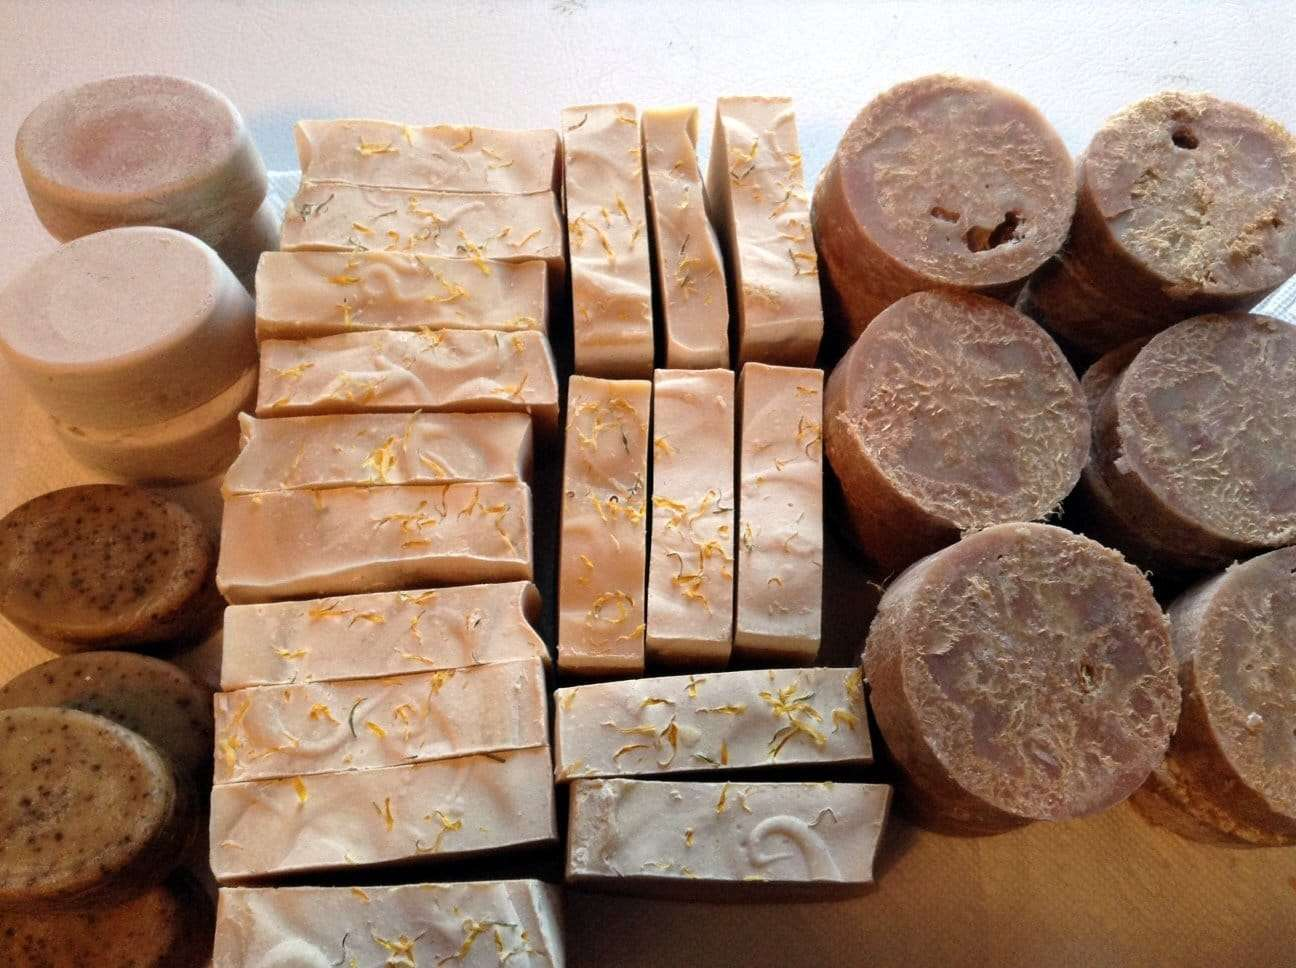 Craftsbury Farmers Market Vendor Products - natural skin-care products